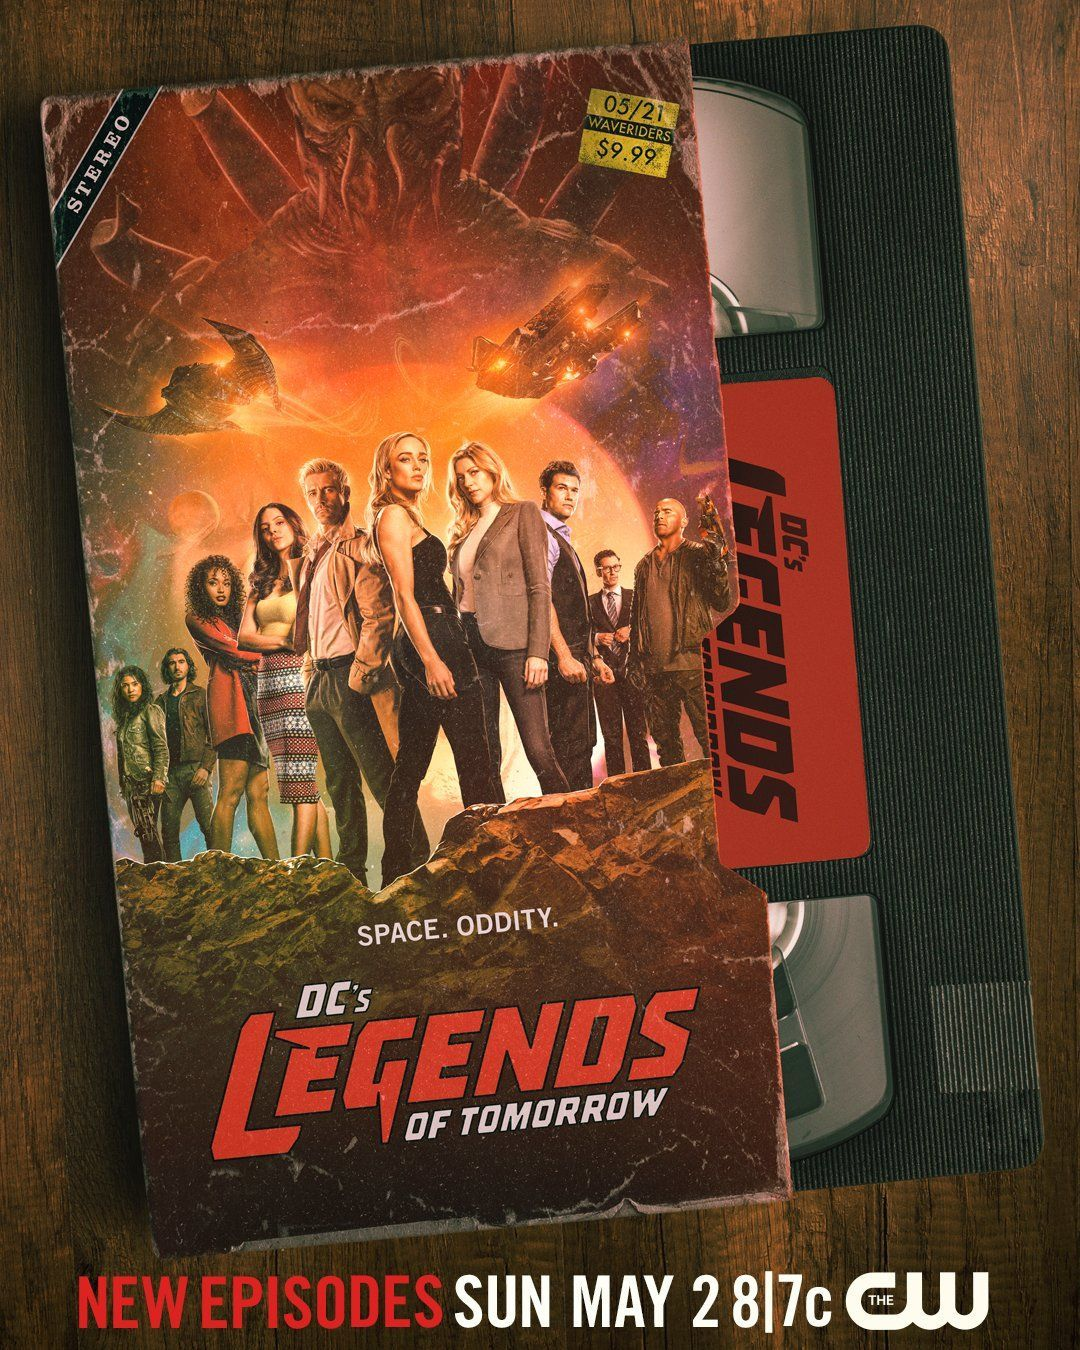 legends-vhs-poster